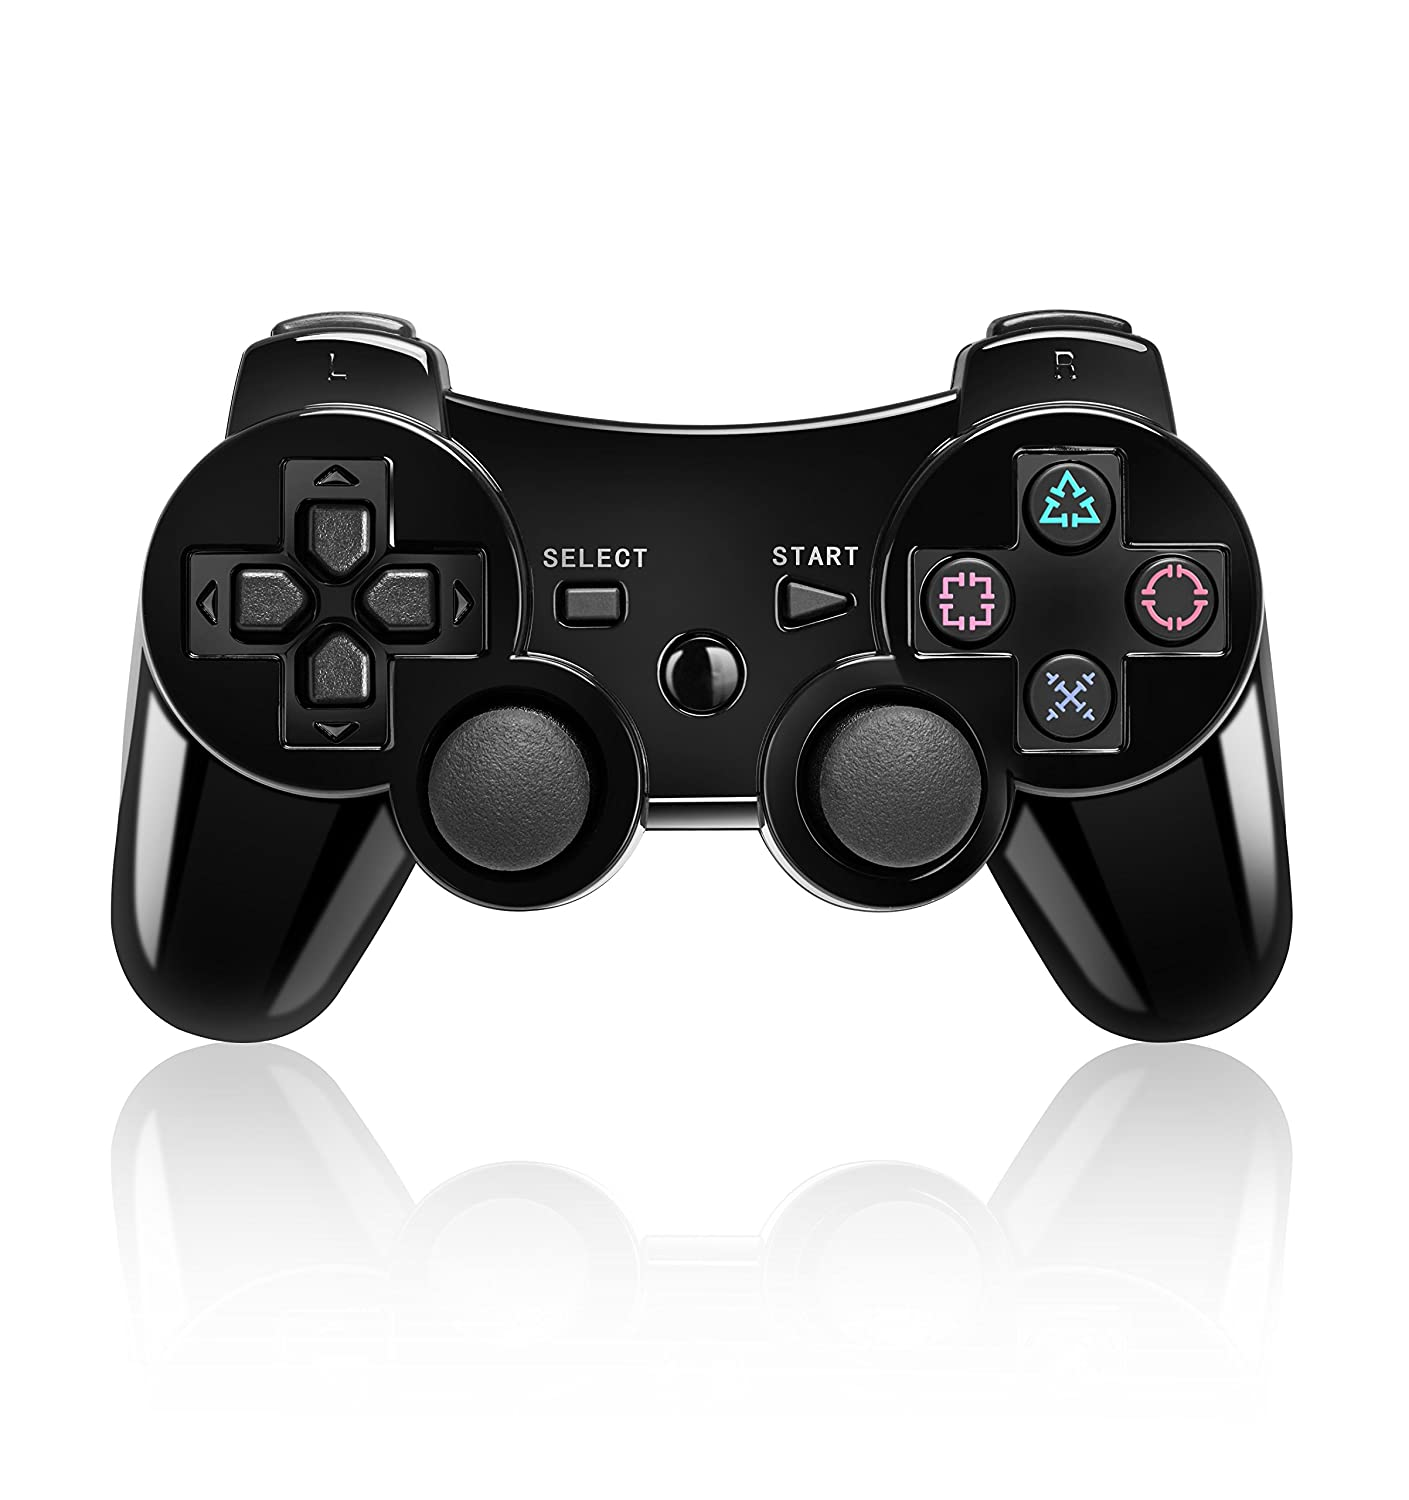 Bluetooth Wireless Vibration Game Manufacturer OFFicial shop Controller Sony for c Max 81% OFF PS3 with